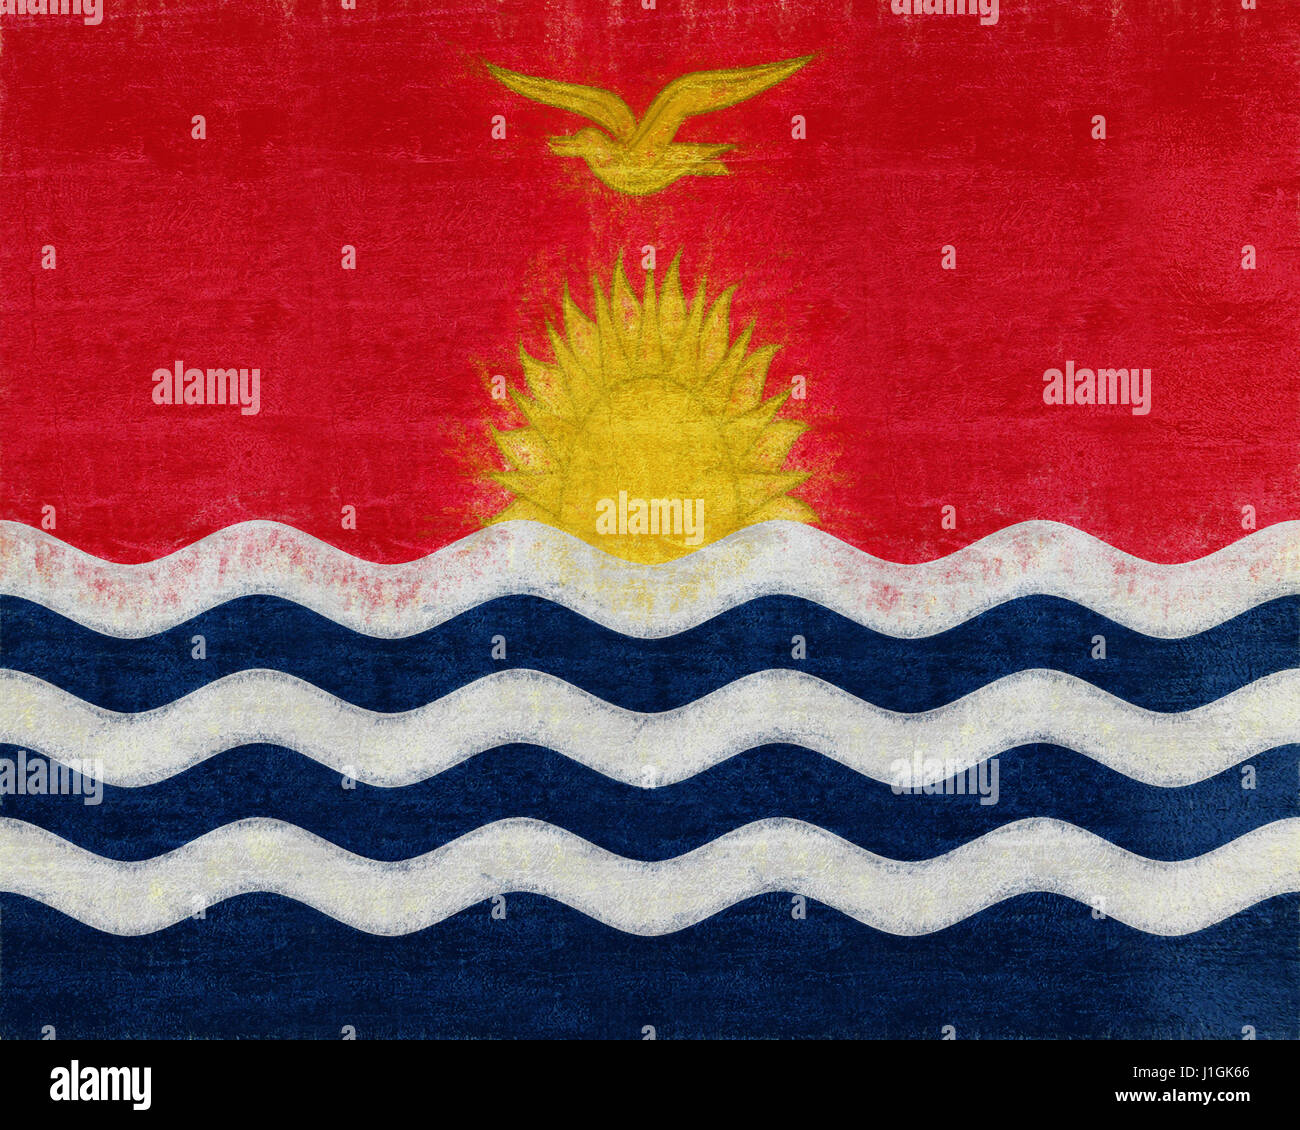 Illustration of the flag of Kiribati with a grunge look - Stock Image